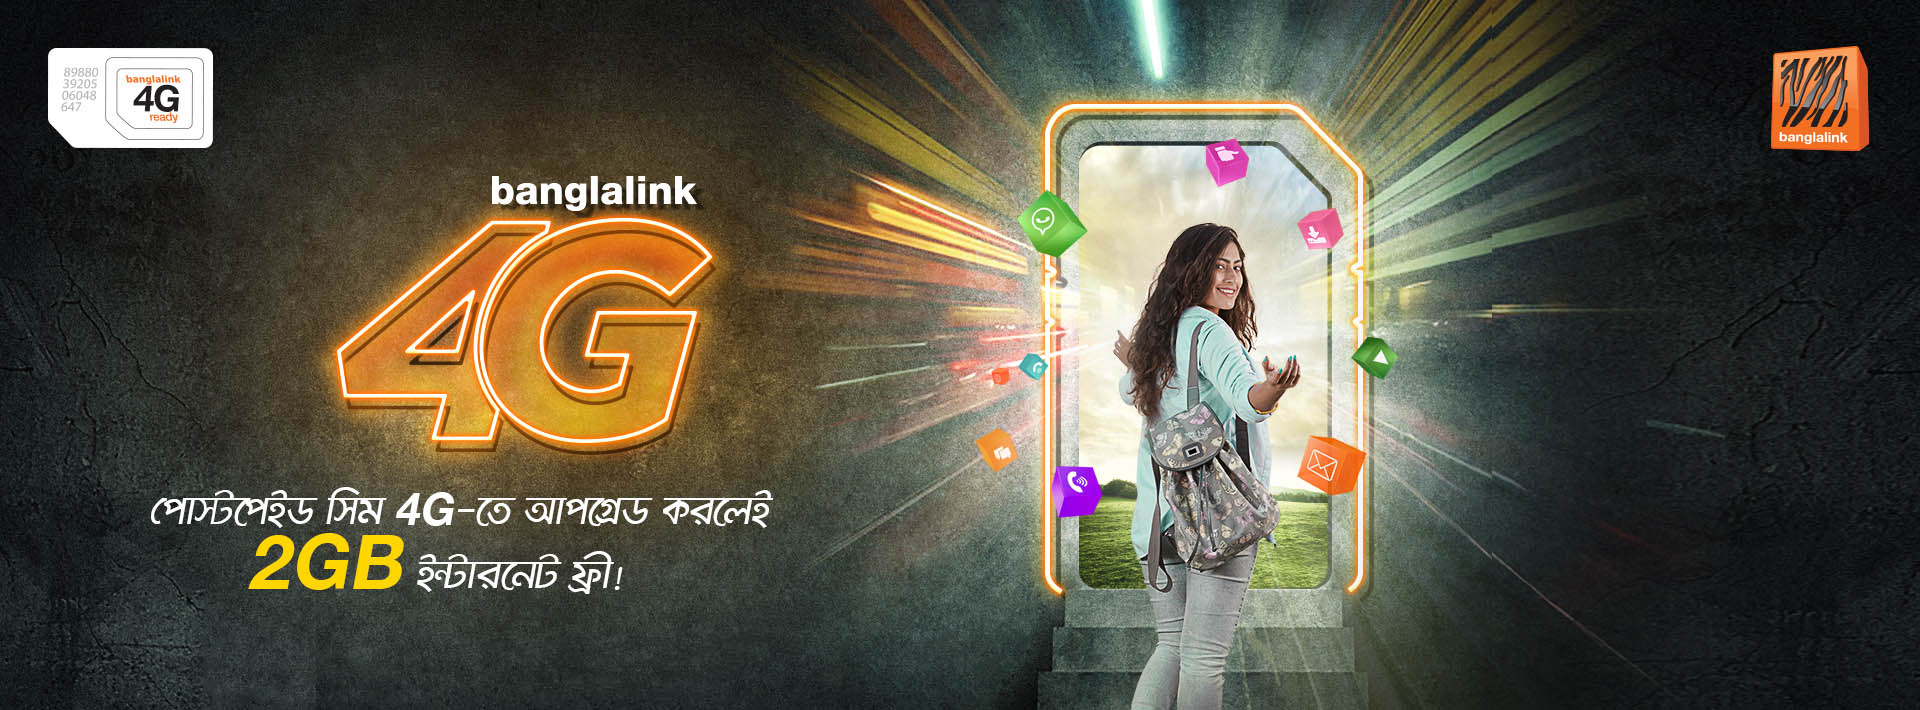 Banglalink 4G SIM Replacement